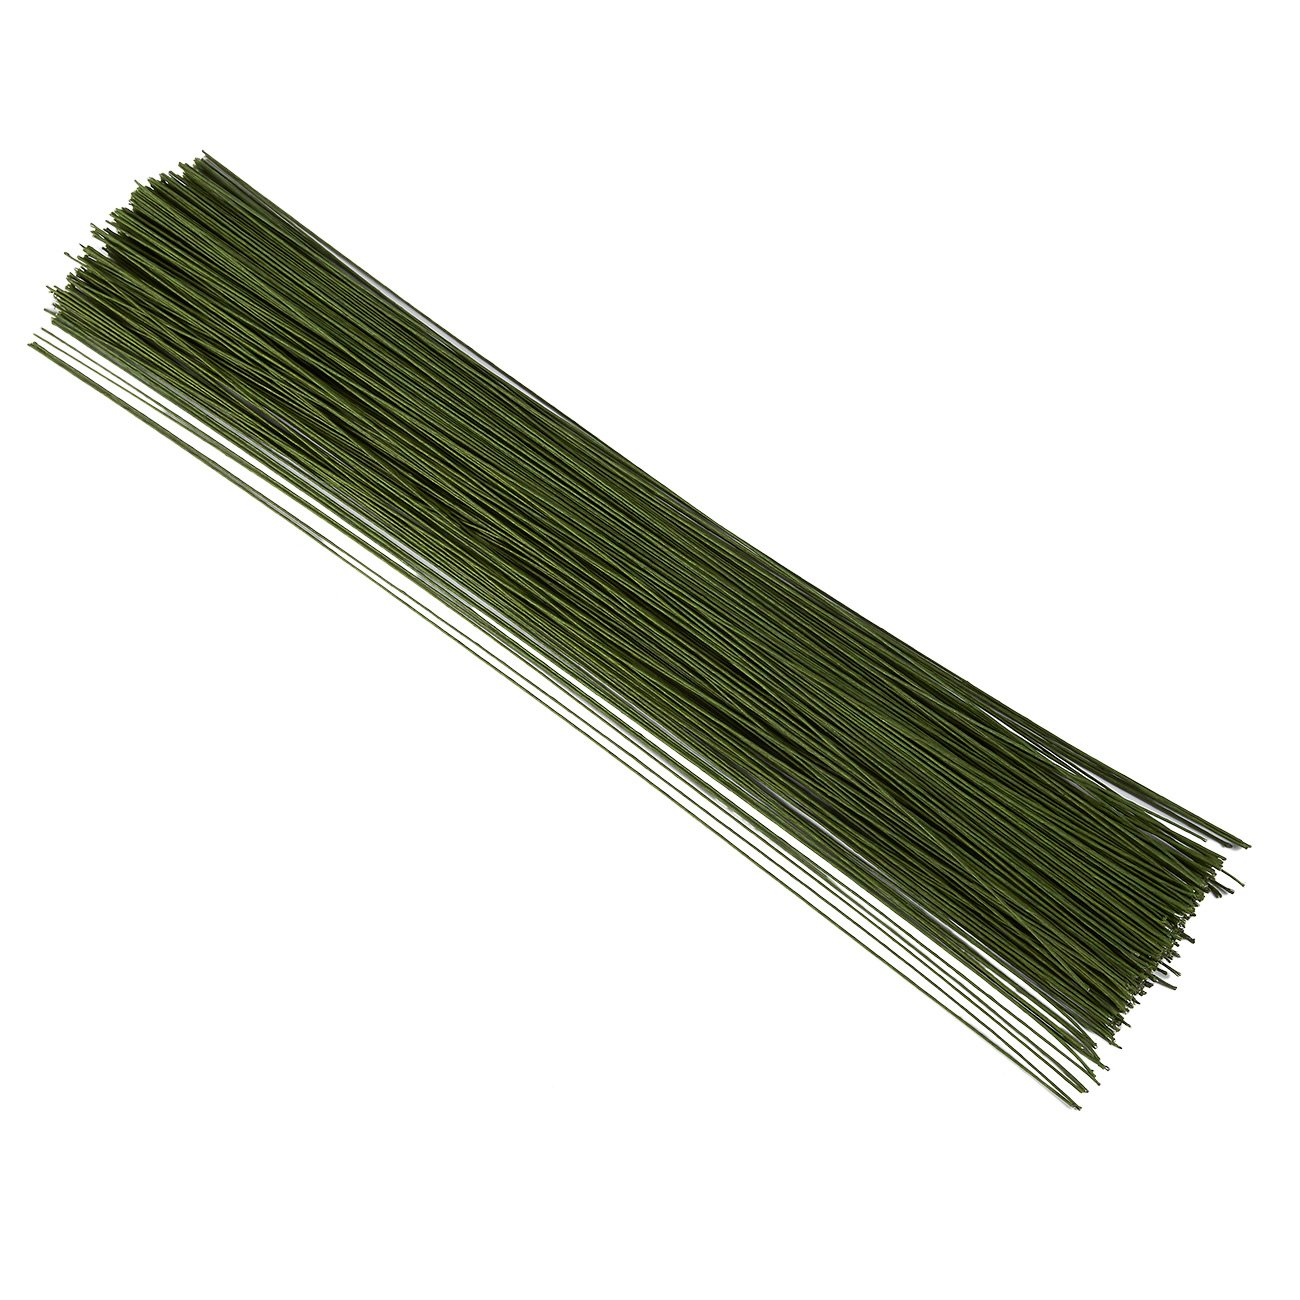 Juvale 300 Piece Wrapped 22 Gauge Floral Wire Stems for Bouquets, Flower Arrangements and DIY Crafts, Dark Green, 16 Inches by Juvale